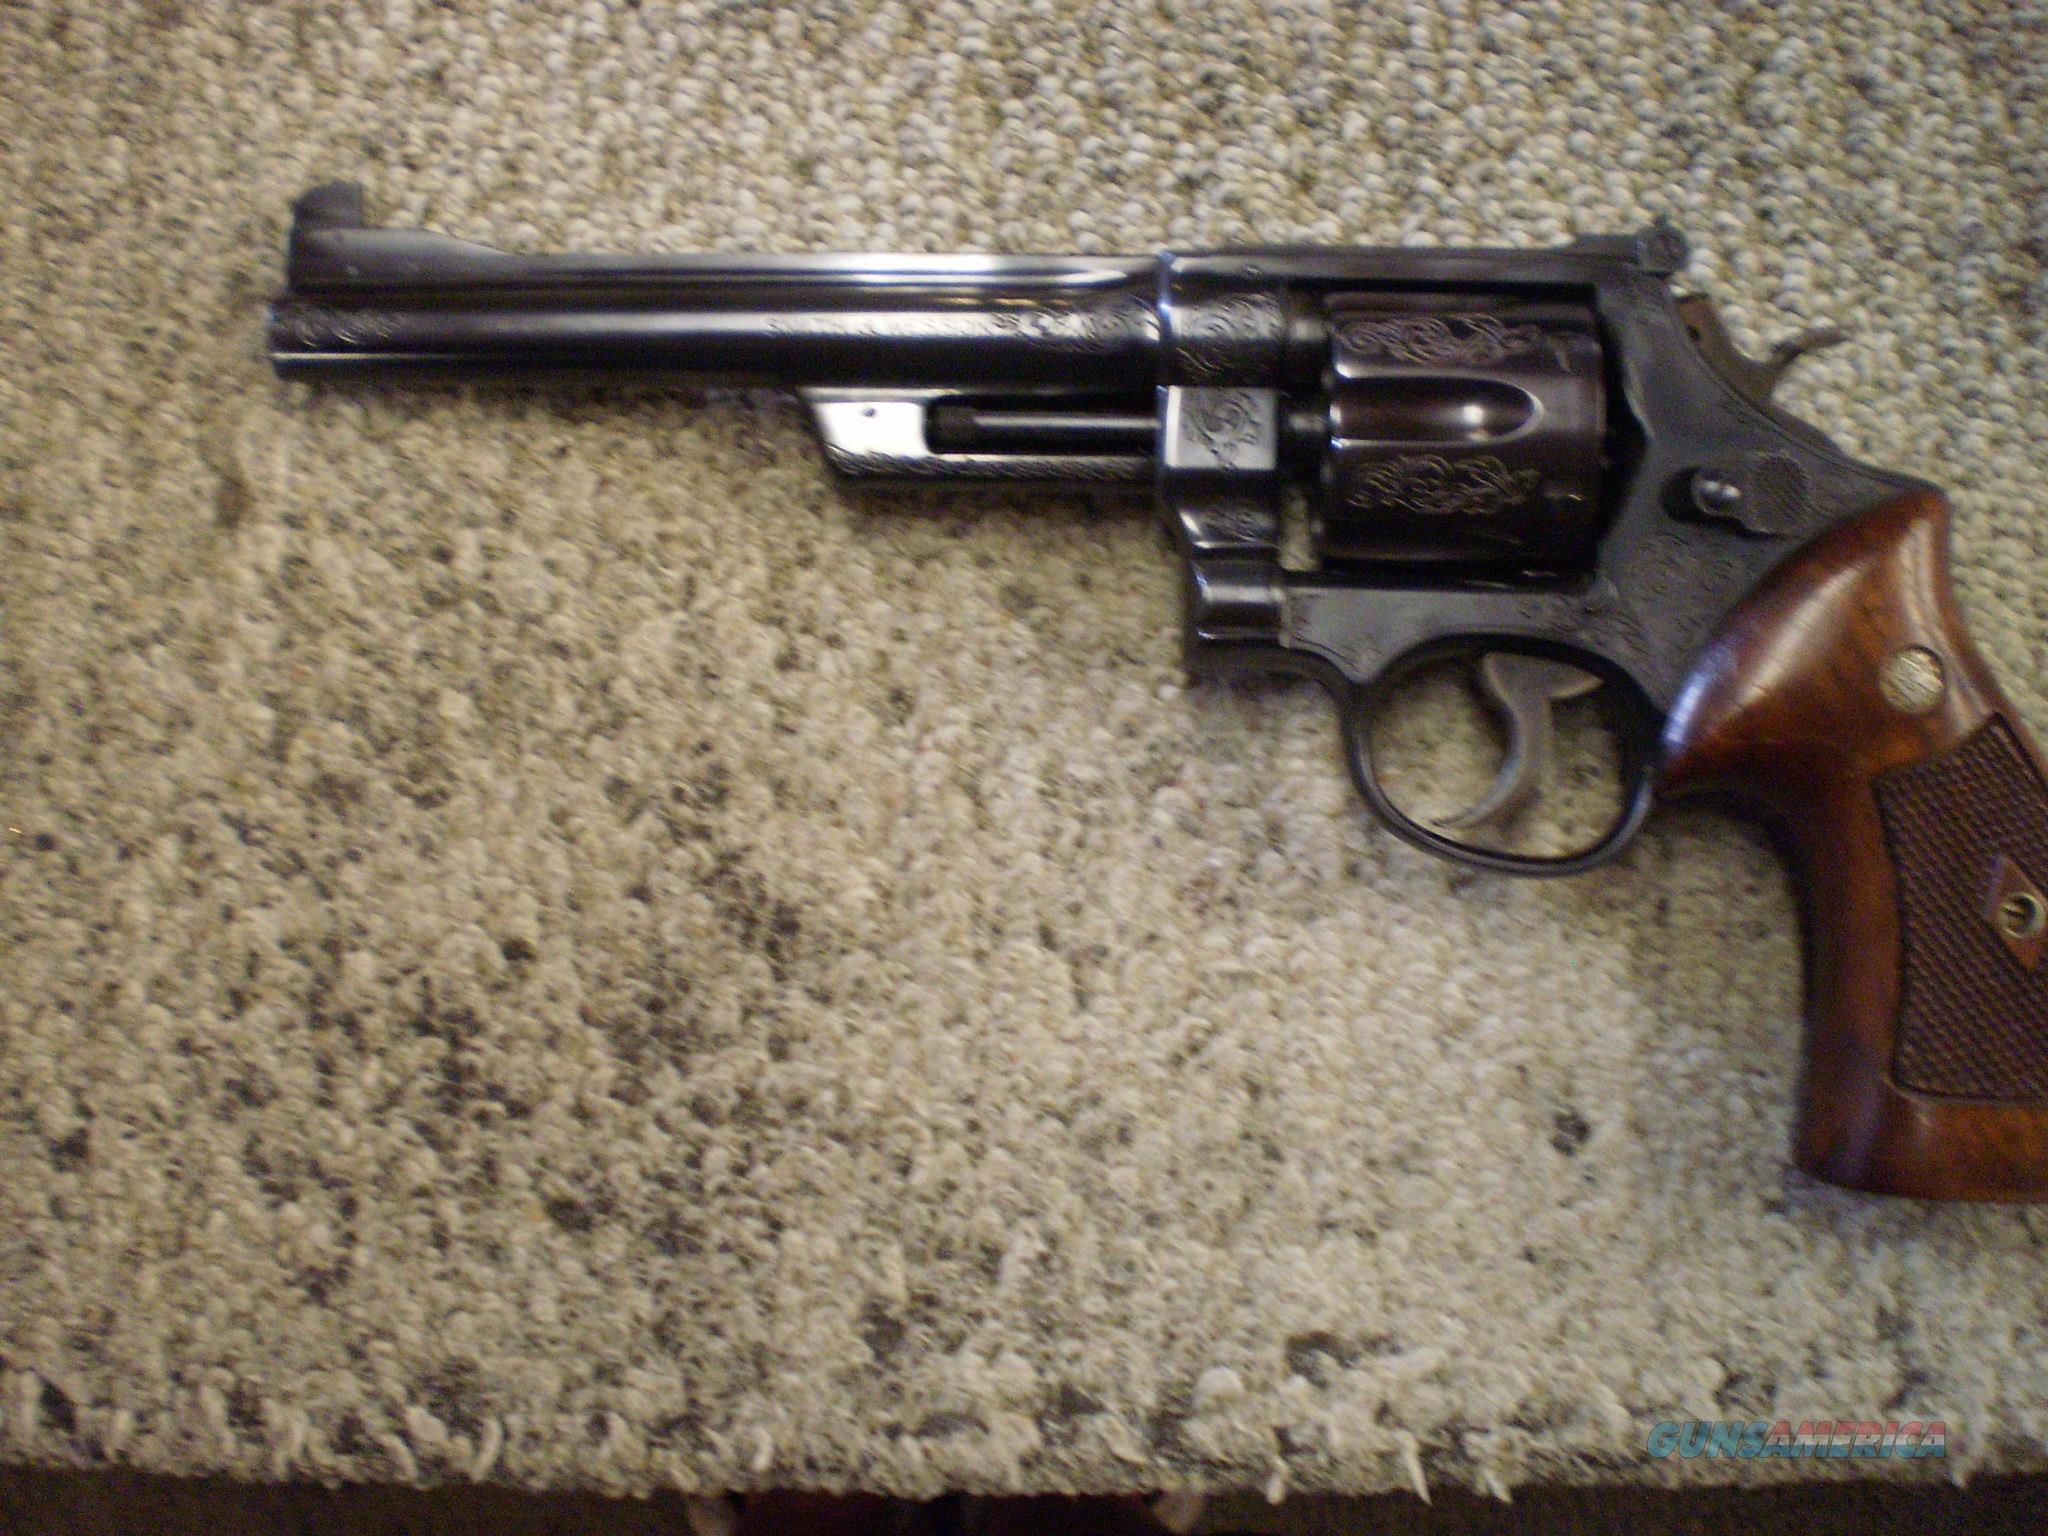 SMITH & WESSON MODEL OF 1950 45 ACP  Guns > Pistols > Smith & Wesson Revolvers > Full Frame Revolver